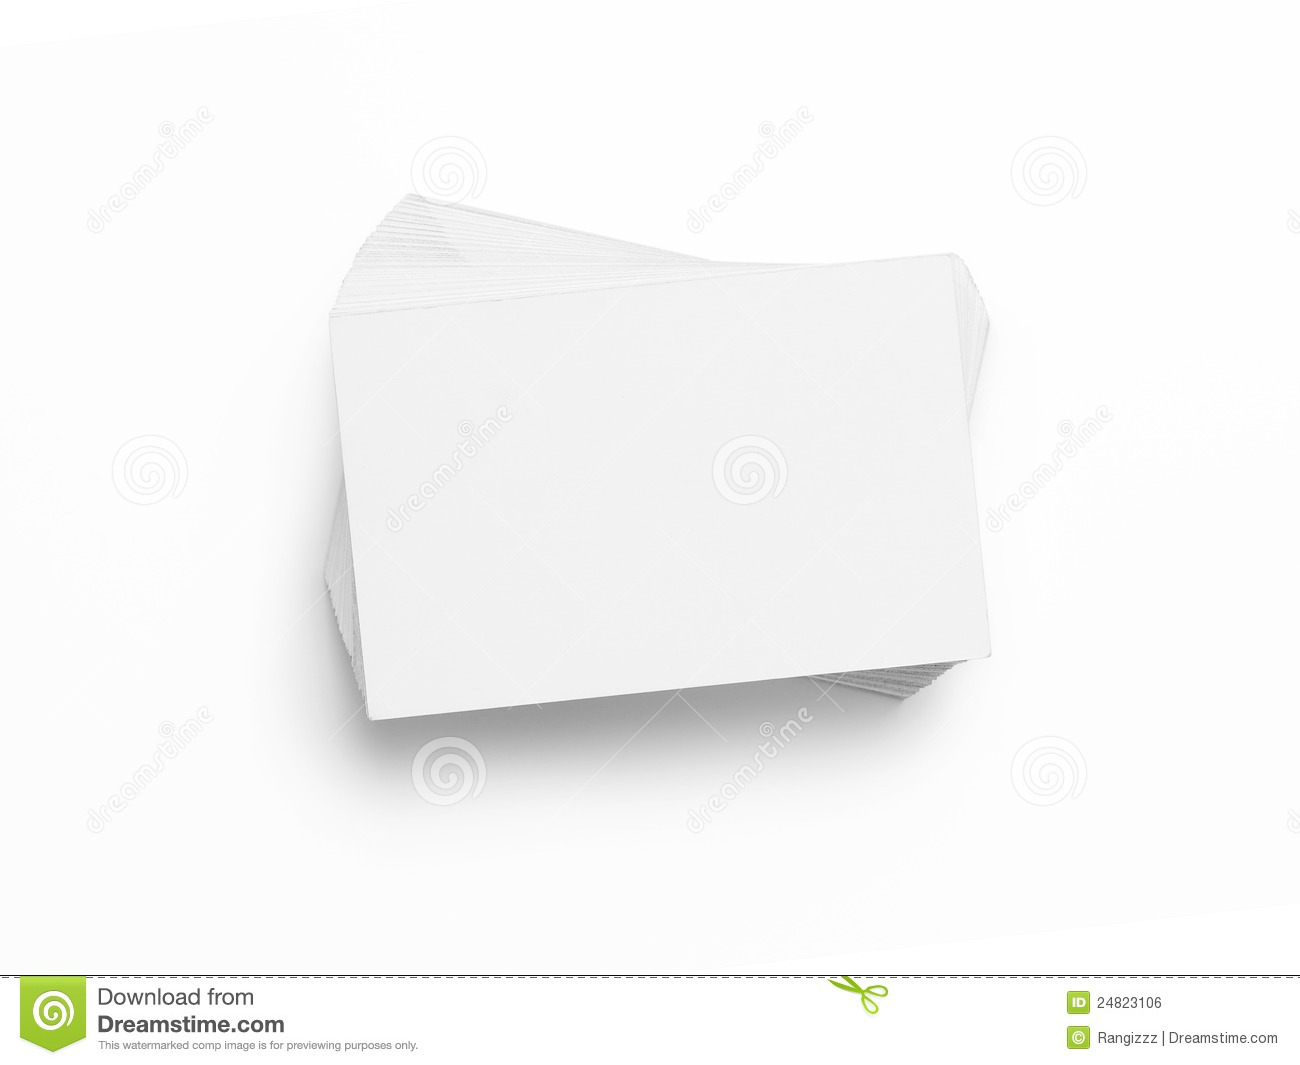 Blank Business Cards Royalty Free Stock Image - Image: 24823106